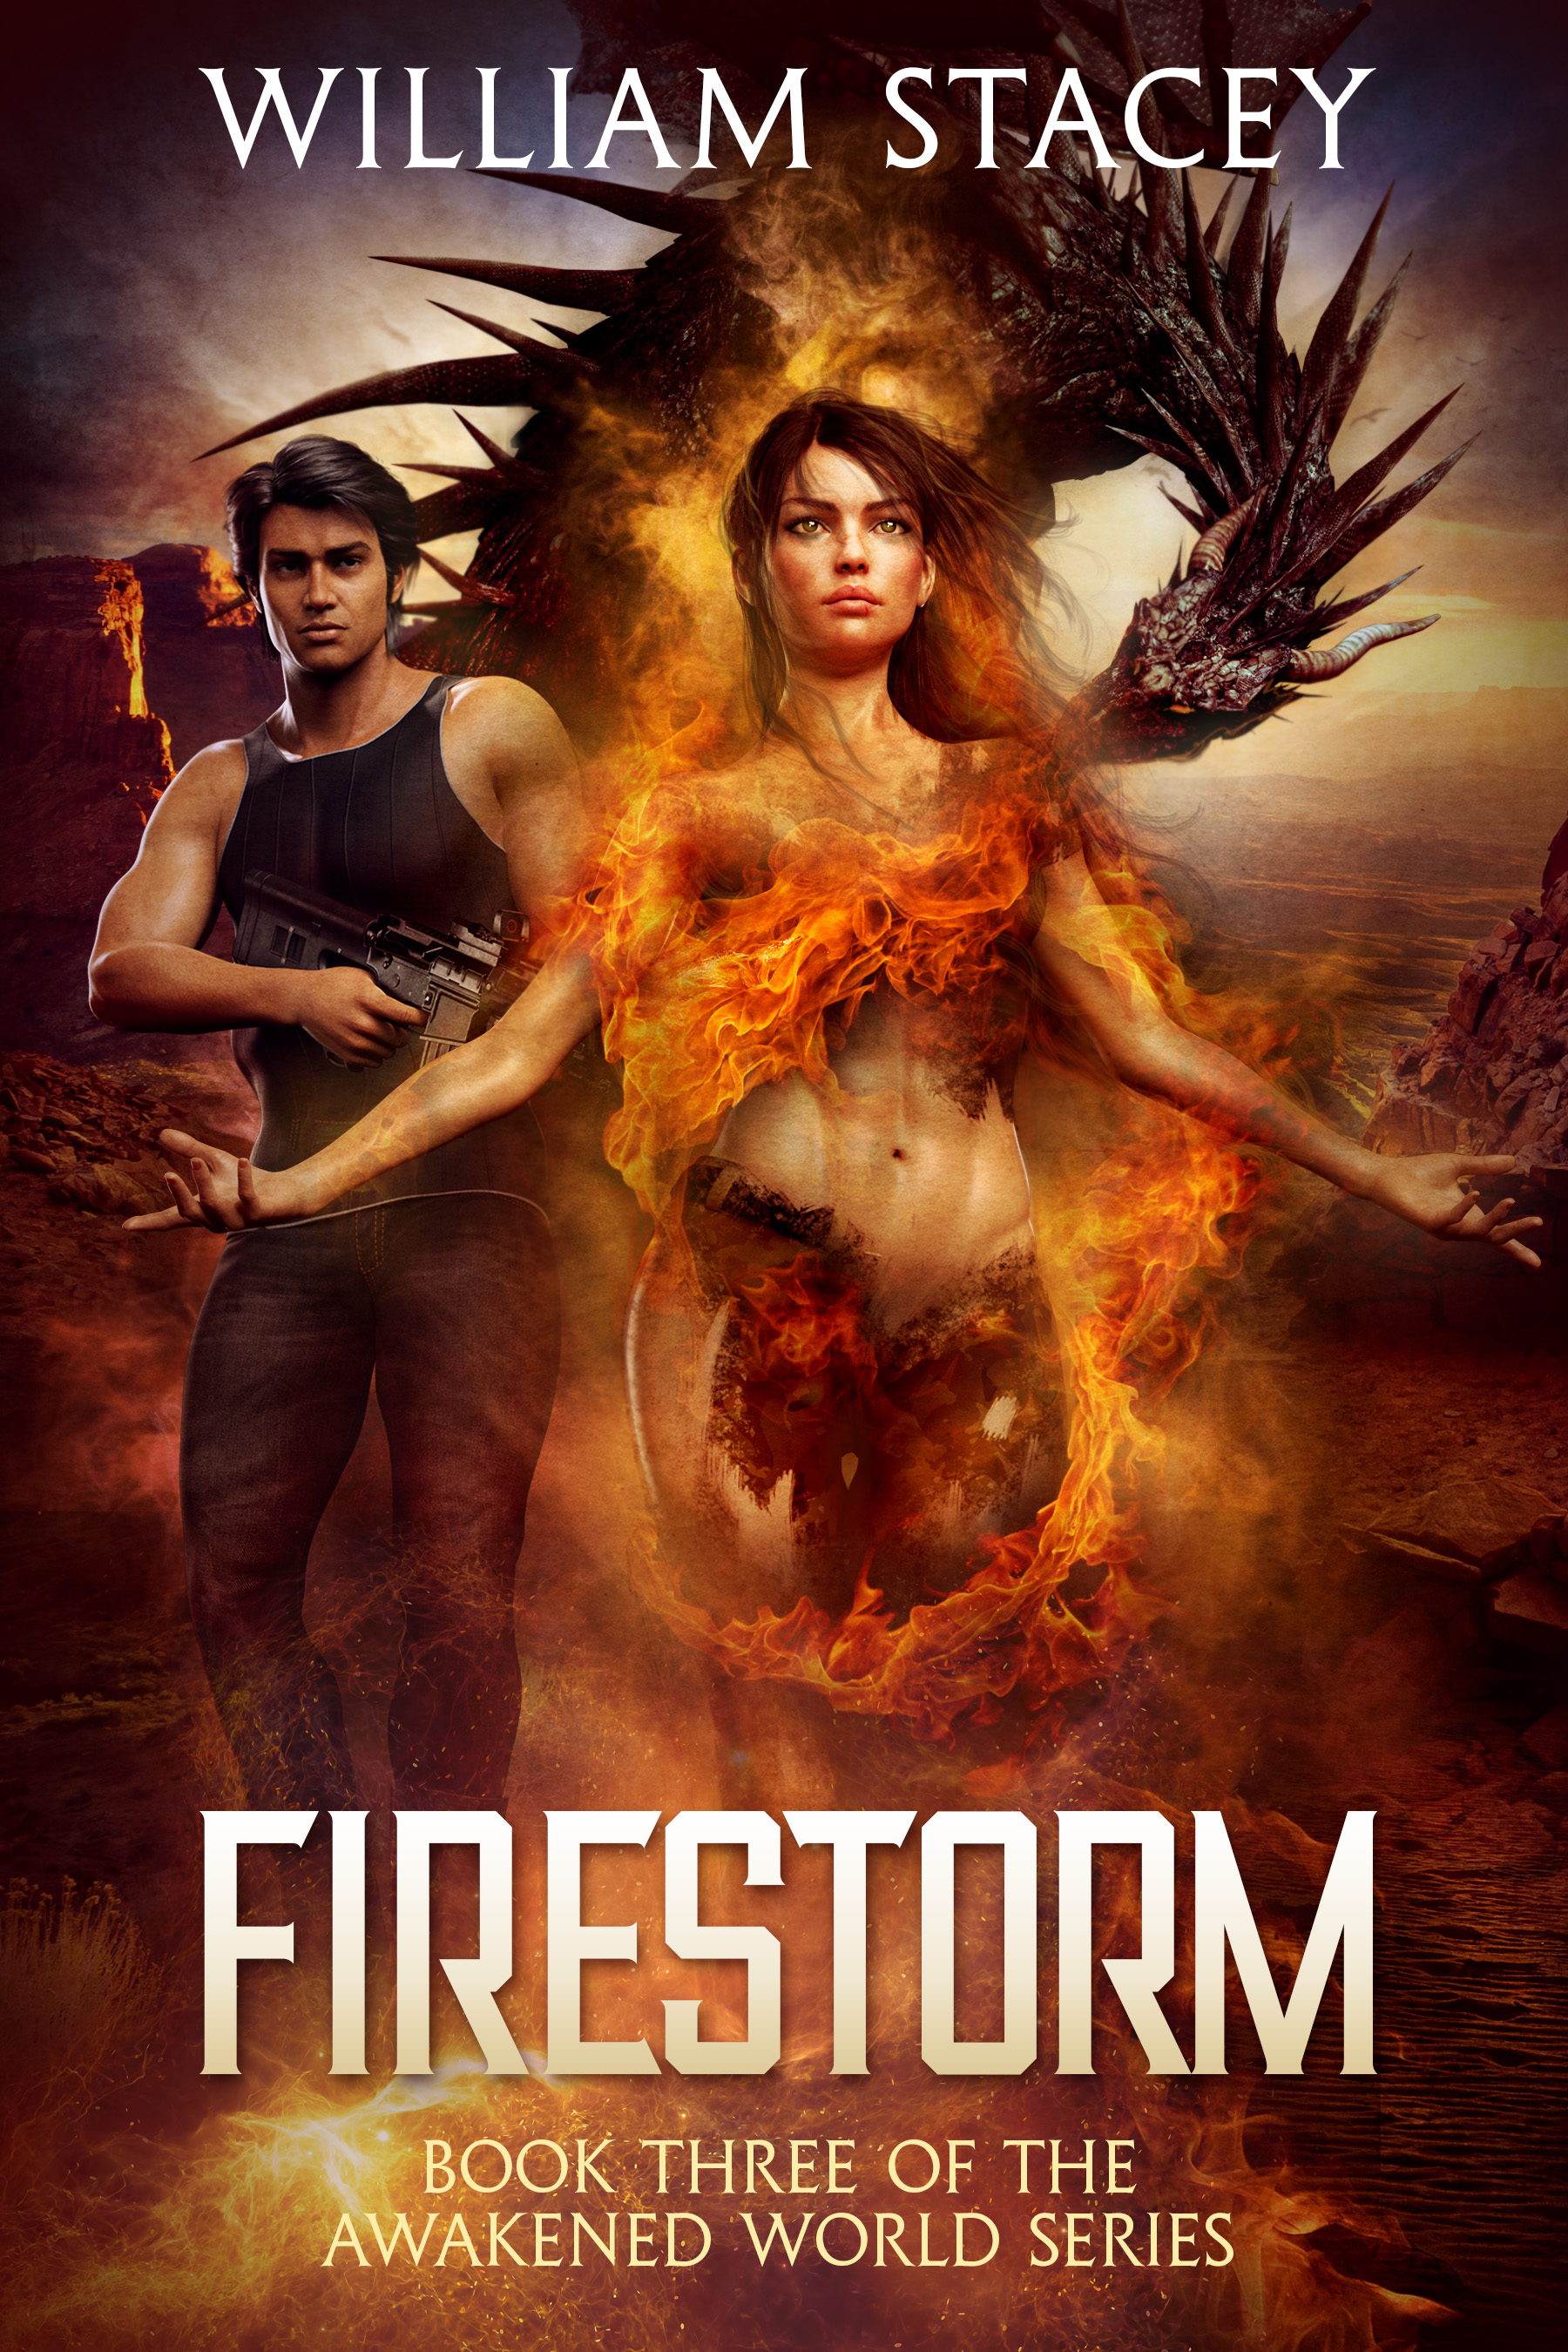 Firestorm  An Urban Fantasy Military Adventure (The Awakened World Book 3) - William Stacey